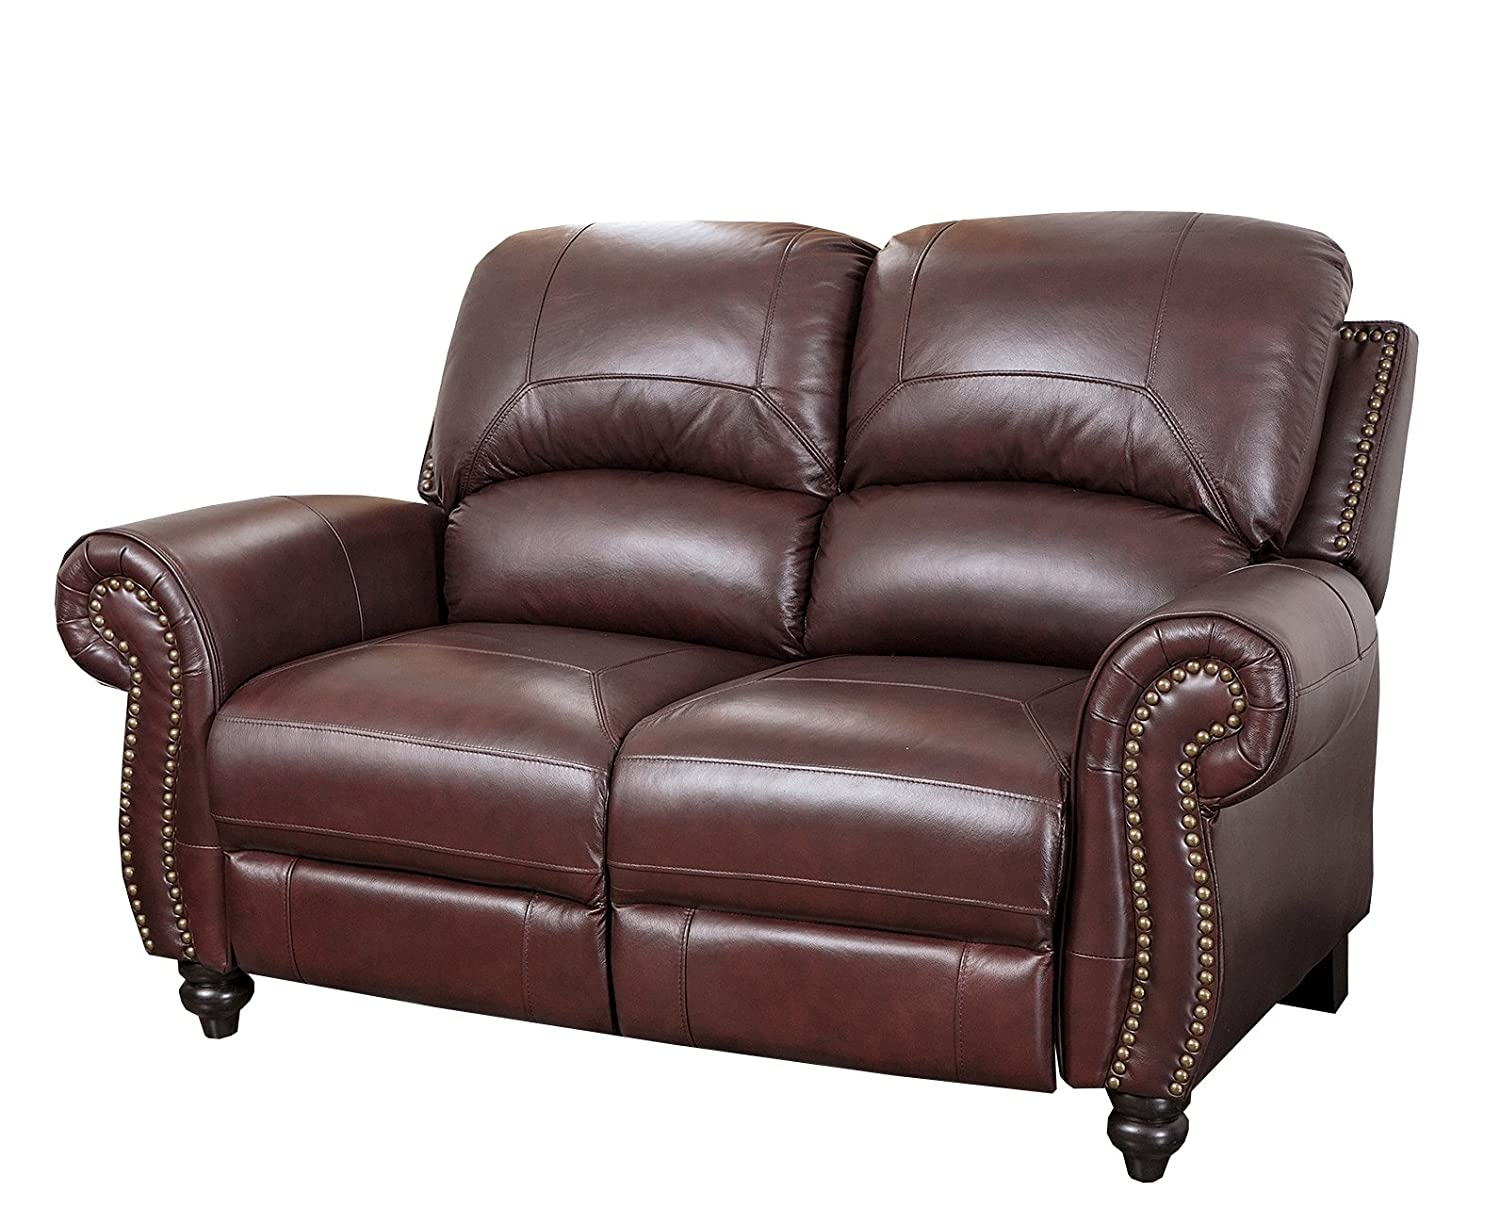 Amazon com abbyson durham leather pushback reclining loveseat burgundy home kitchen